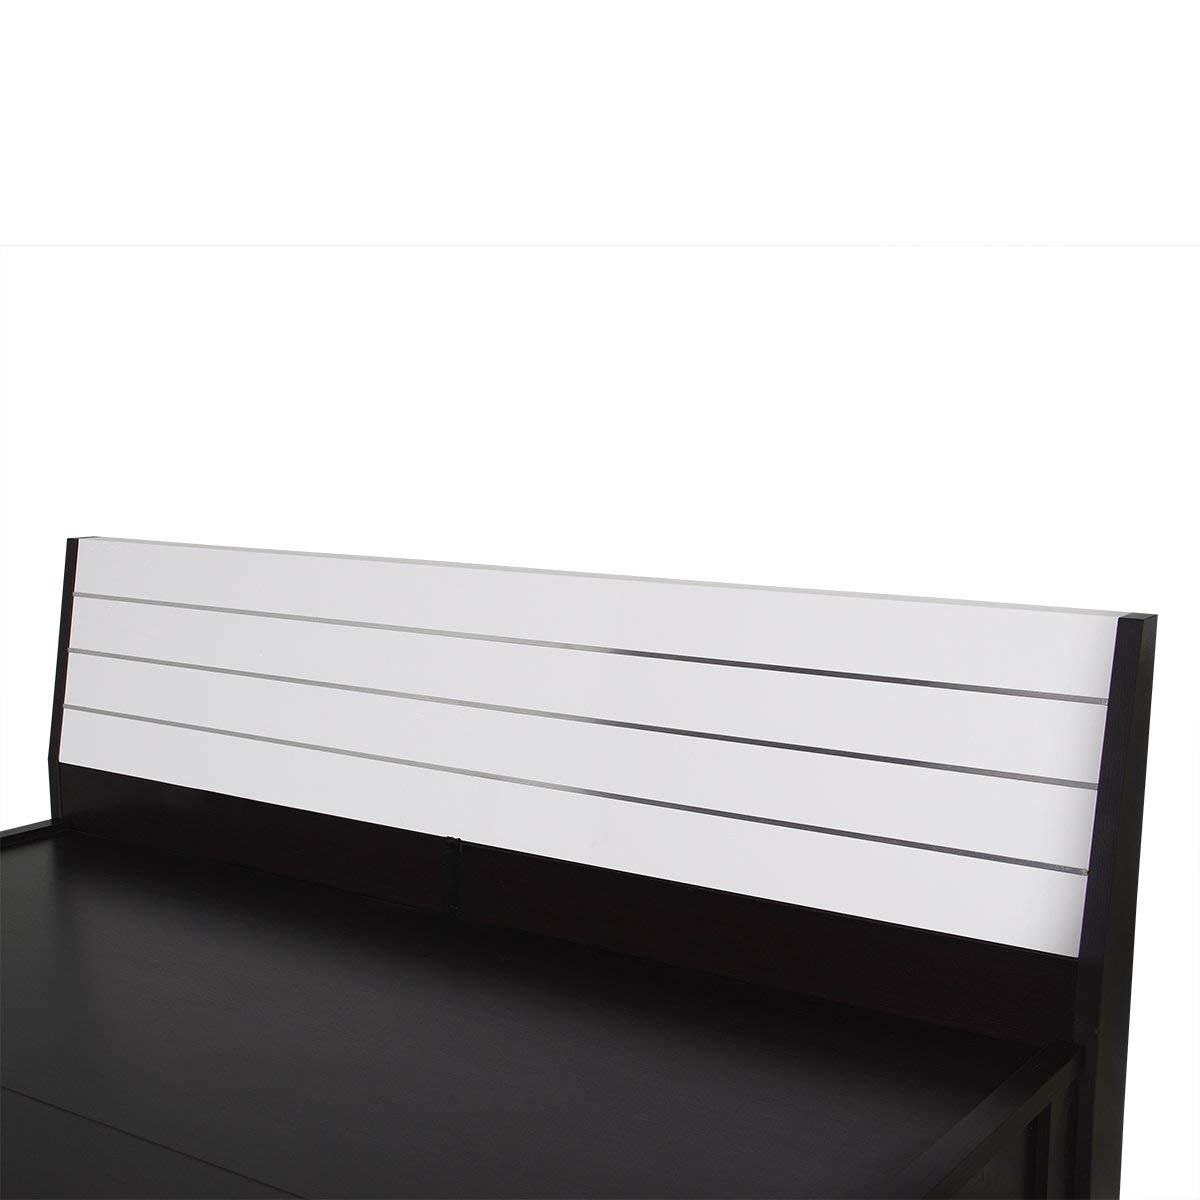 Kosmo New Viva King Size Bed With Lift On Storage In